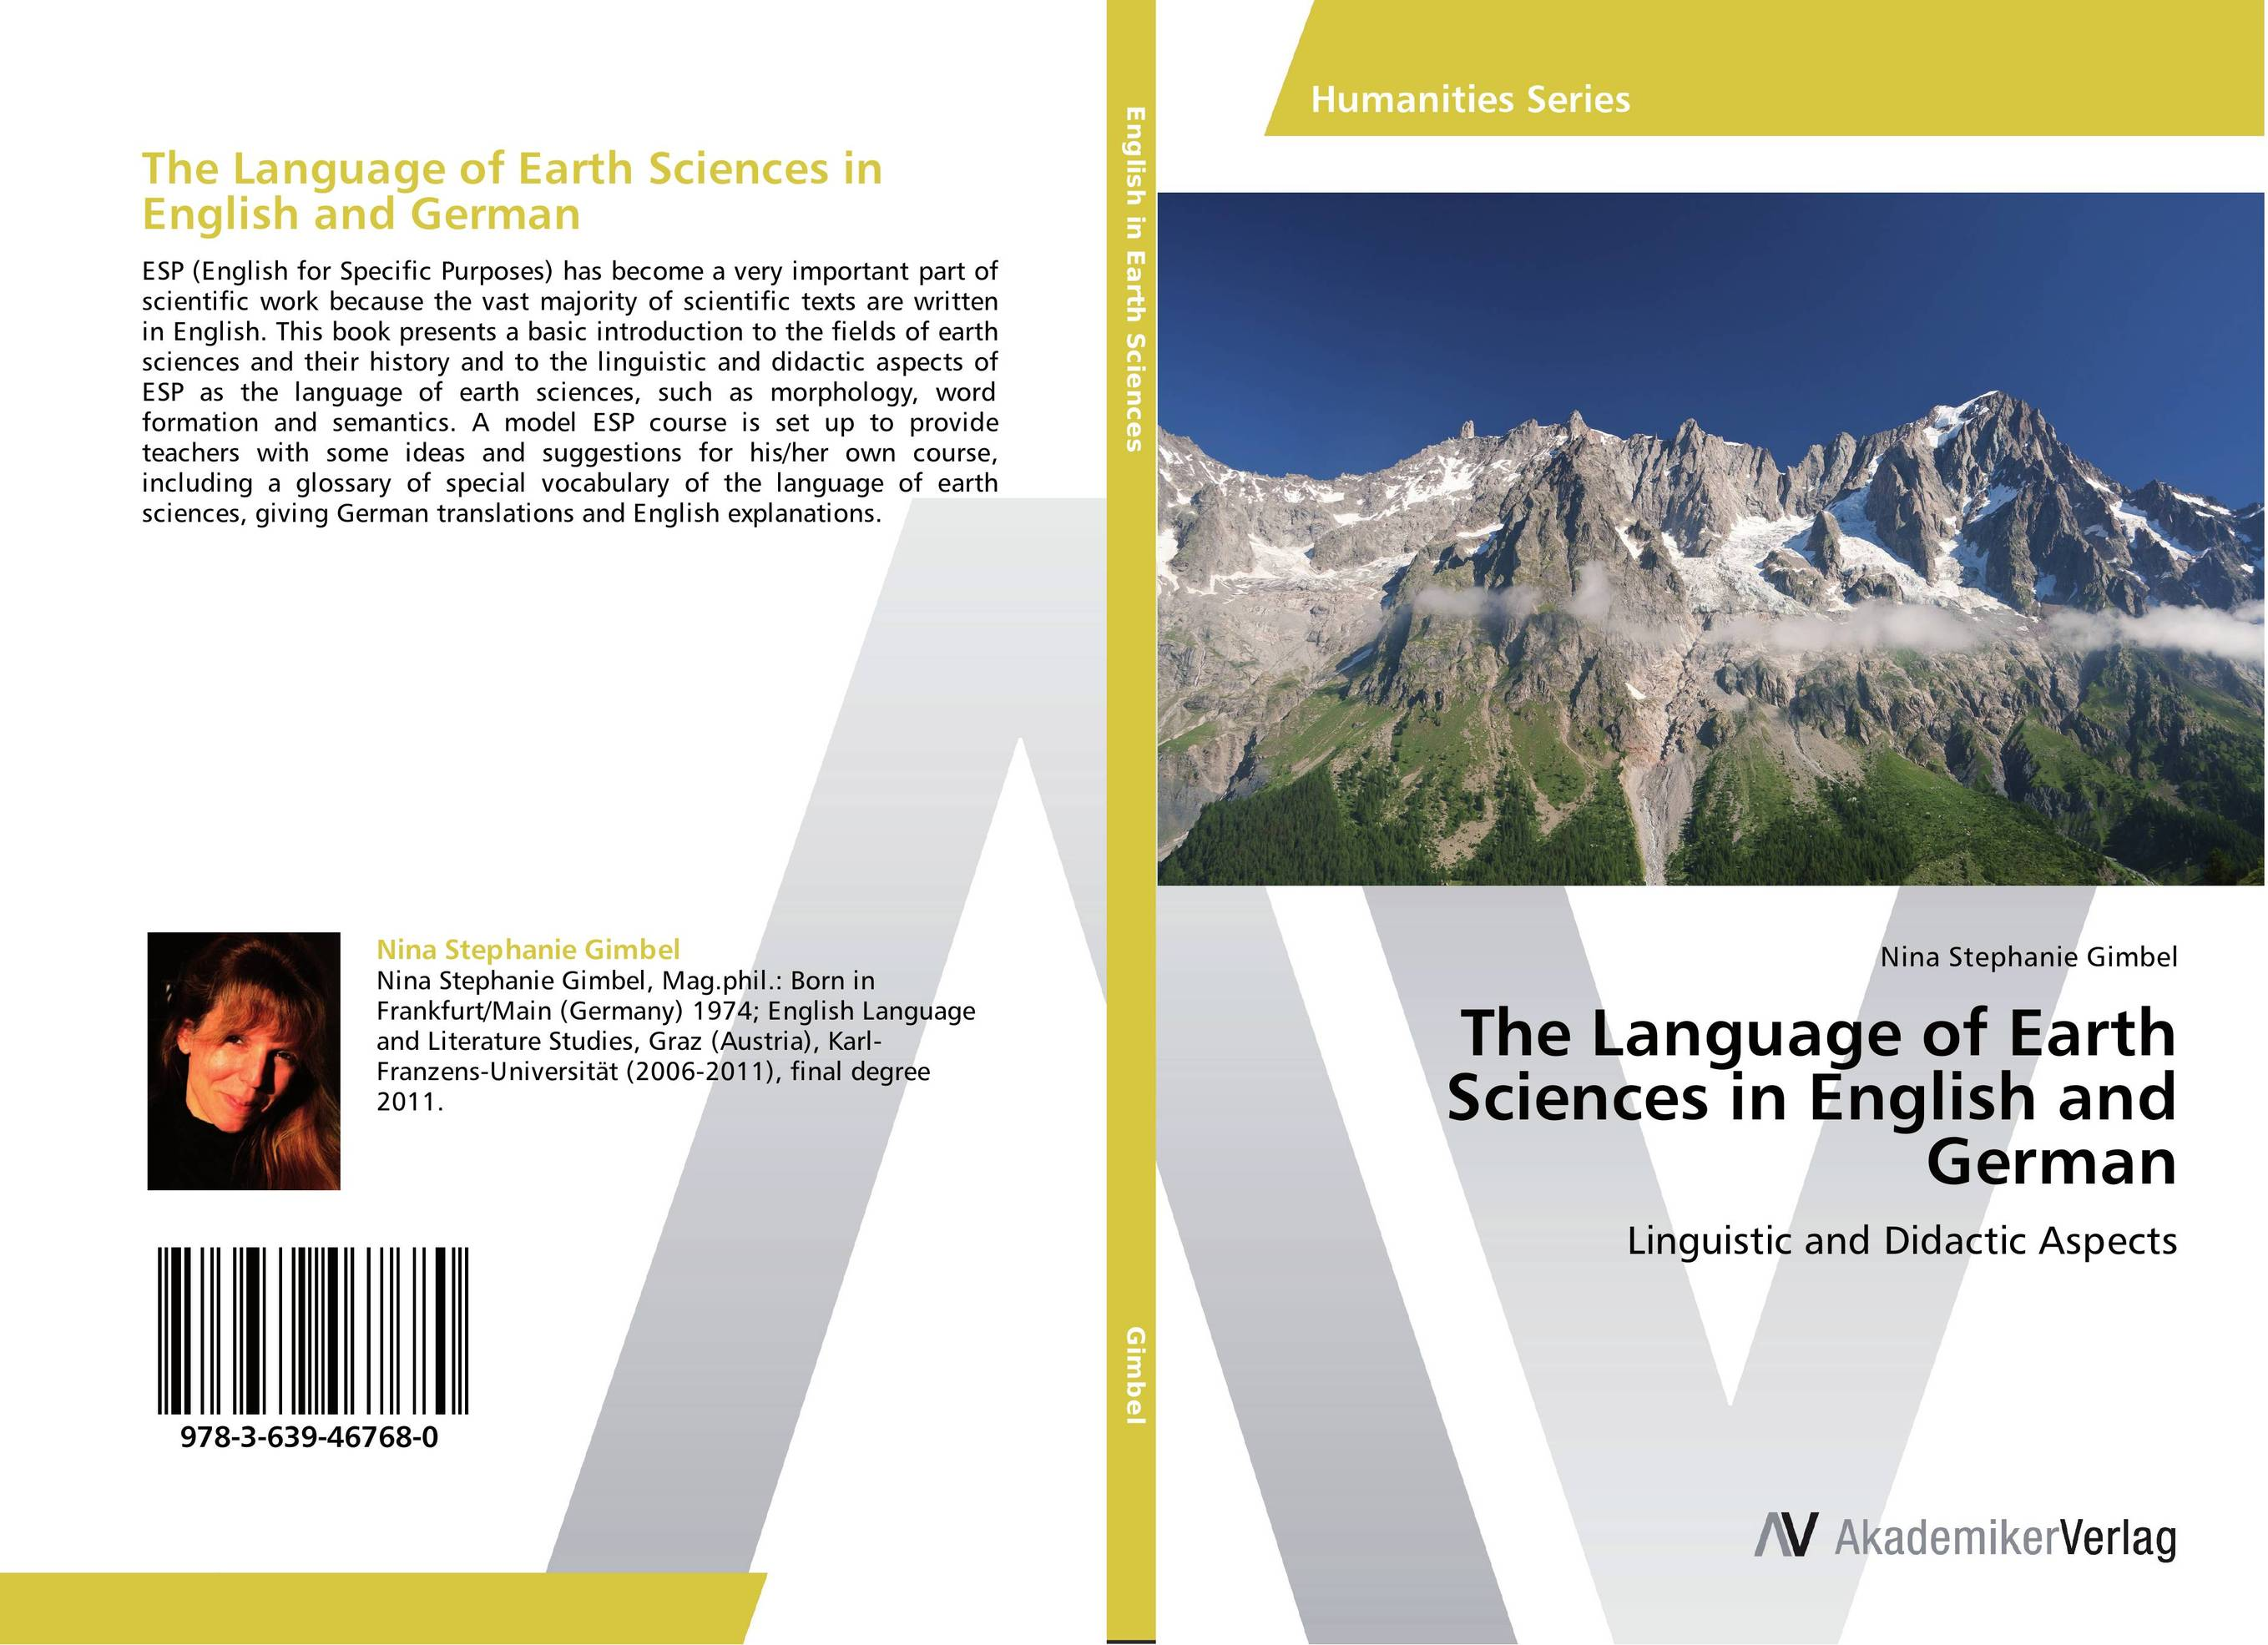 The Language of Earth Sciences in English and German